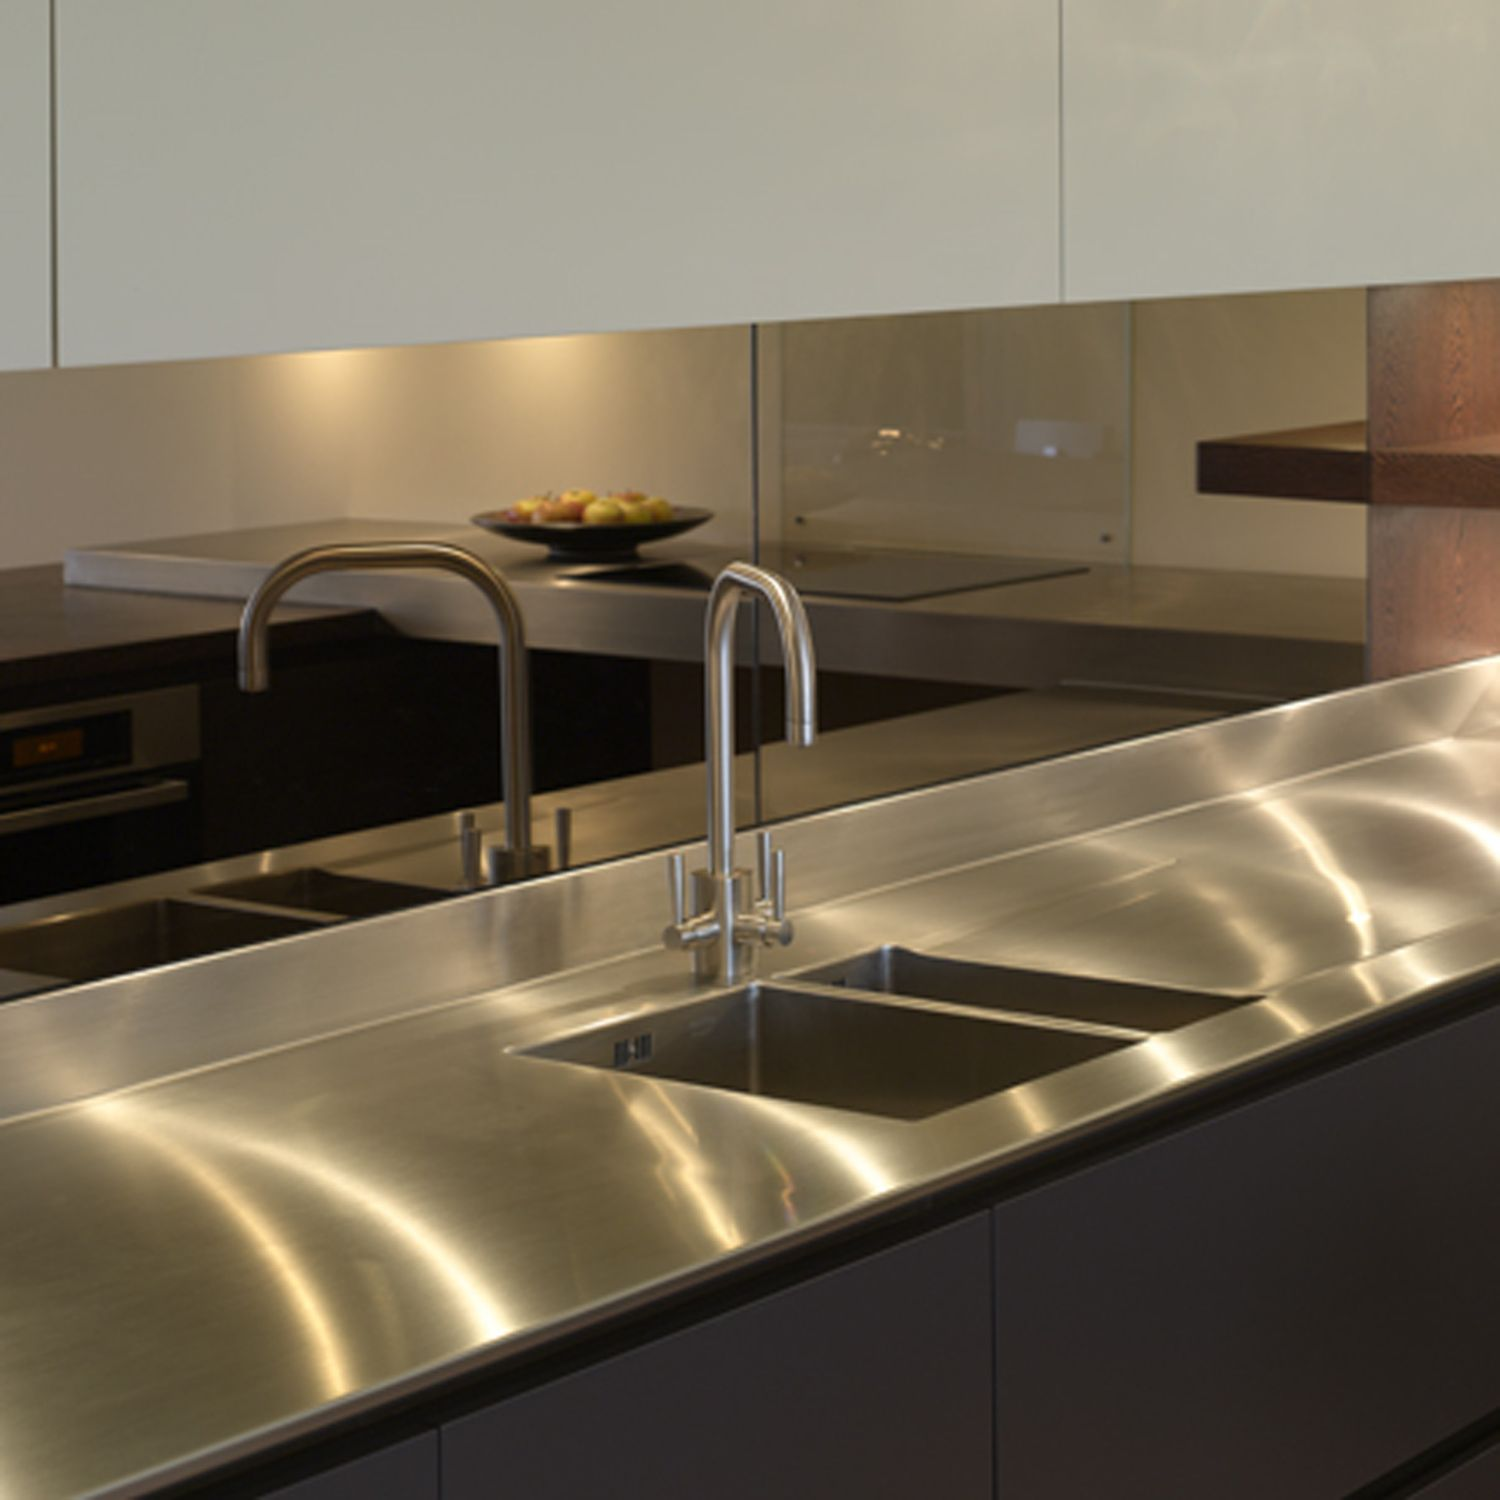 Stainless Steel Surface And Mirror Splashback In